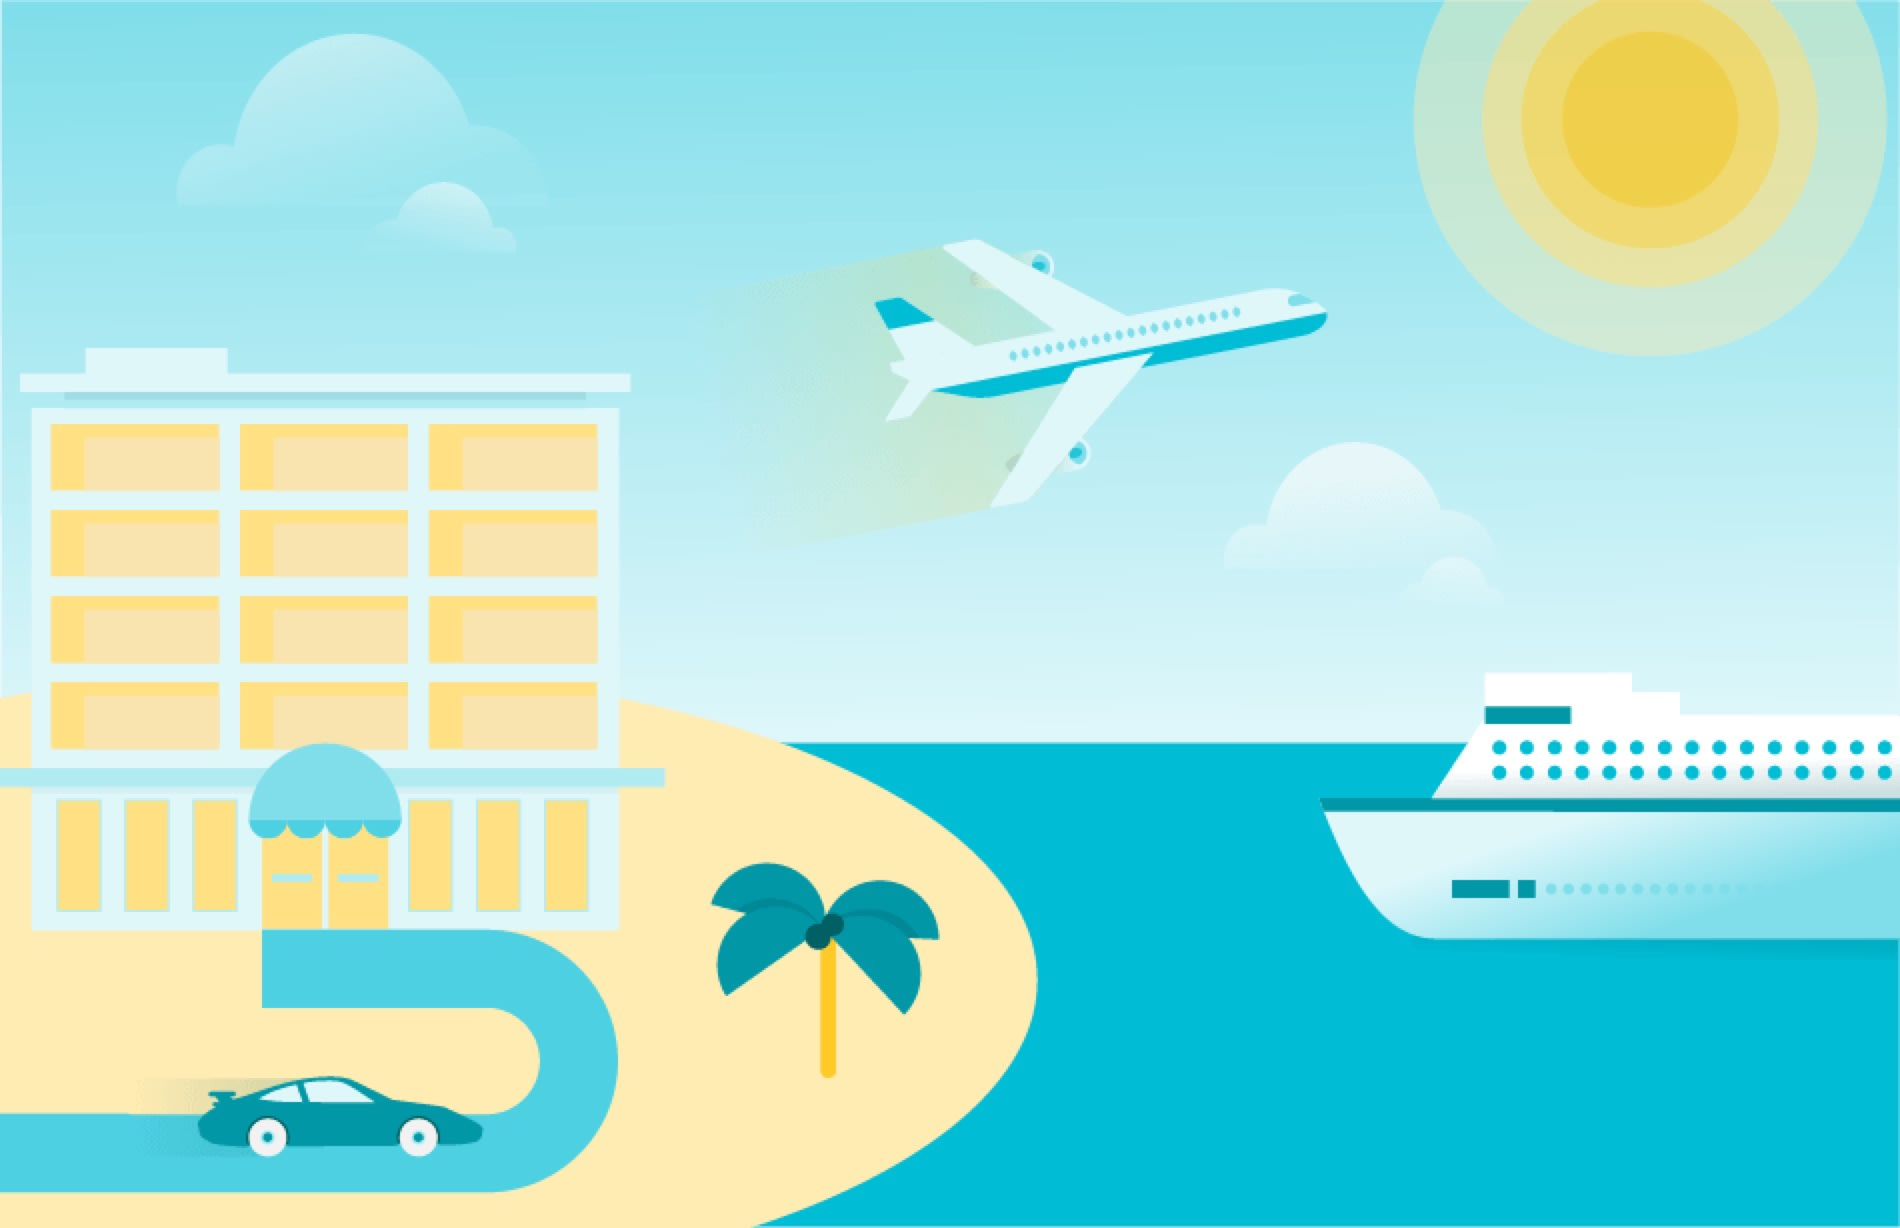 A custom illustration depicts a resort, a plane, and a boat.